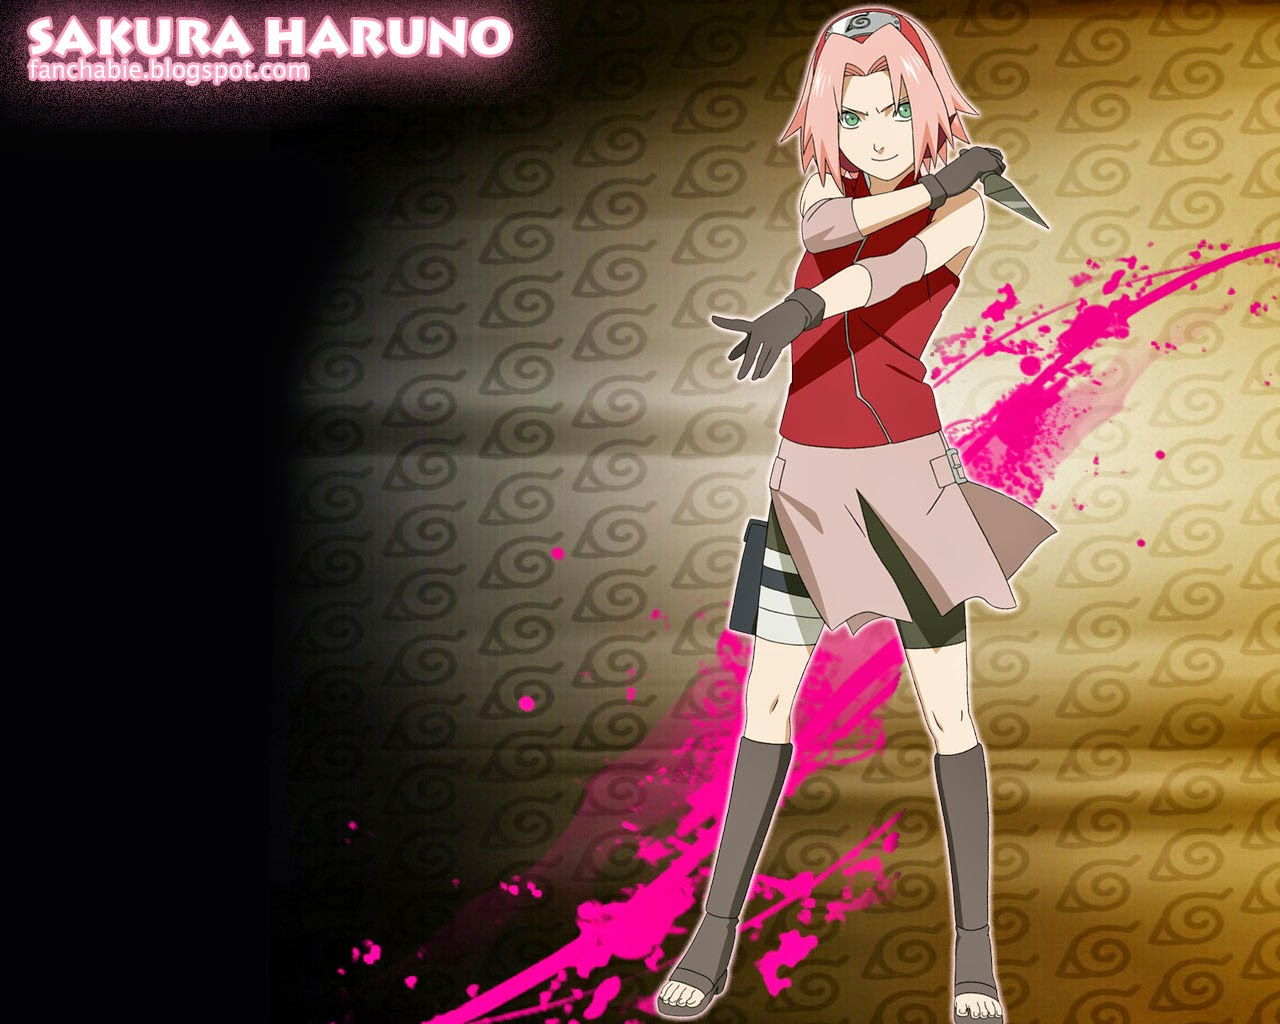 Nice wallpaper from Sakura Haruno